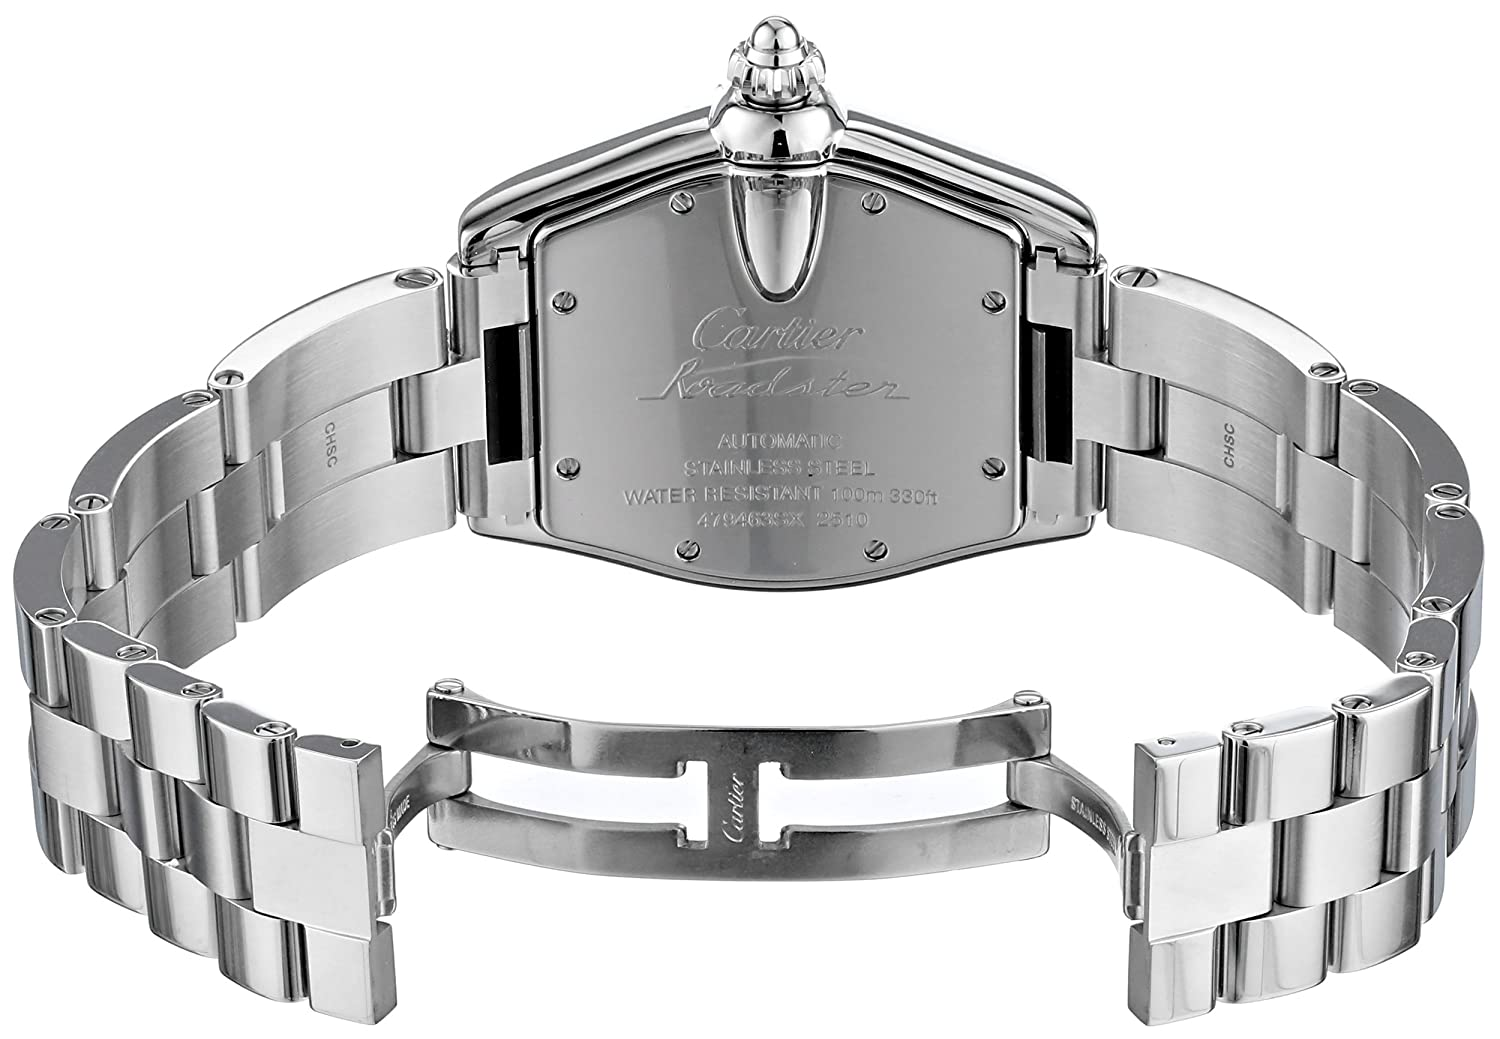 21e5b24f86a Amazon.com  Cartier Men s W62025V3 Roadster Stainless Steel Automatic  Watch  Cartier  Watches